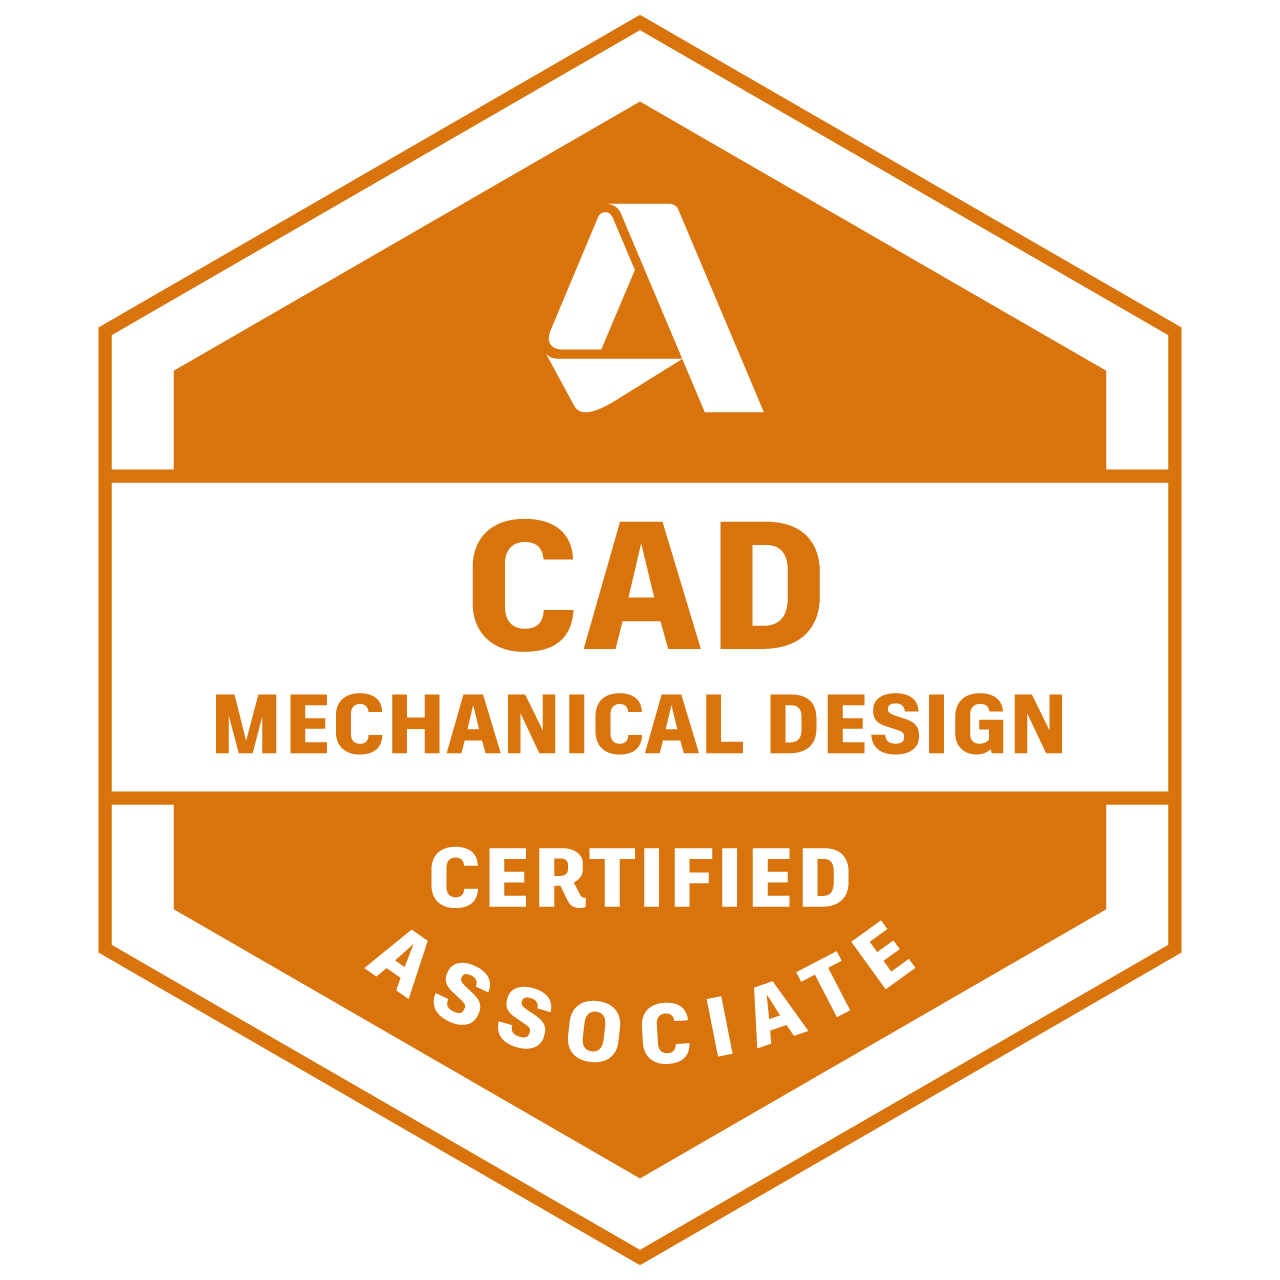 Autodesk Certified Associate in CAD for Mechanical Design